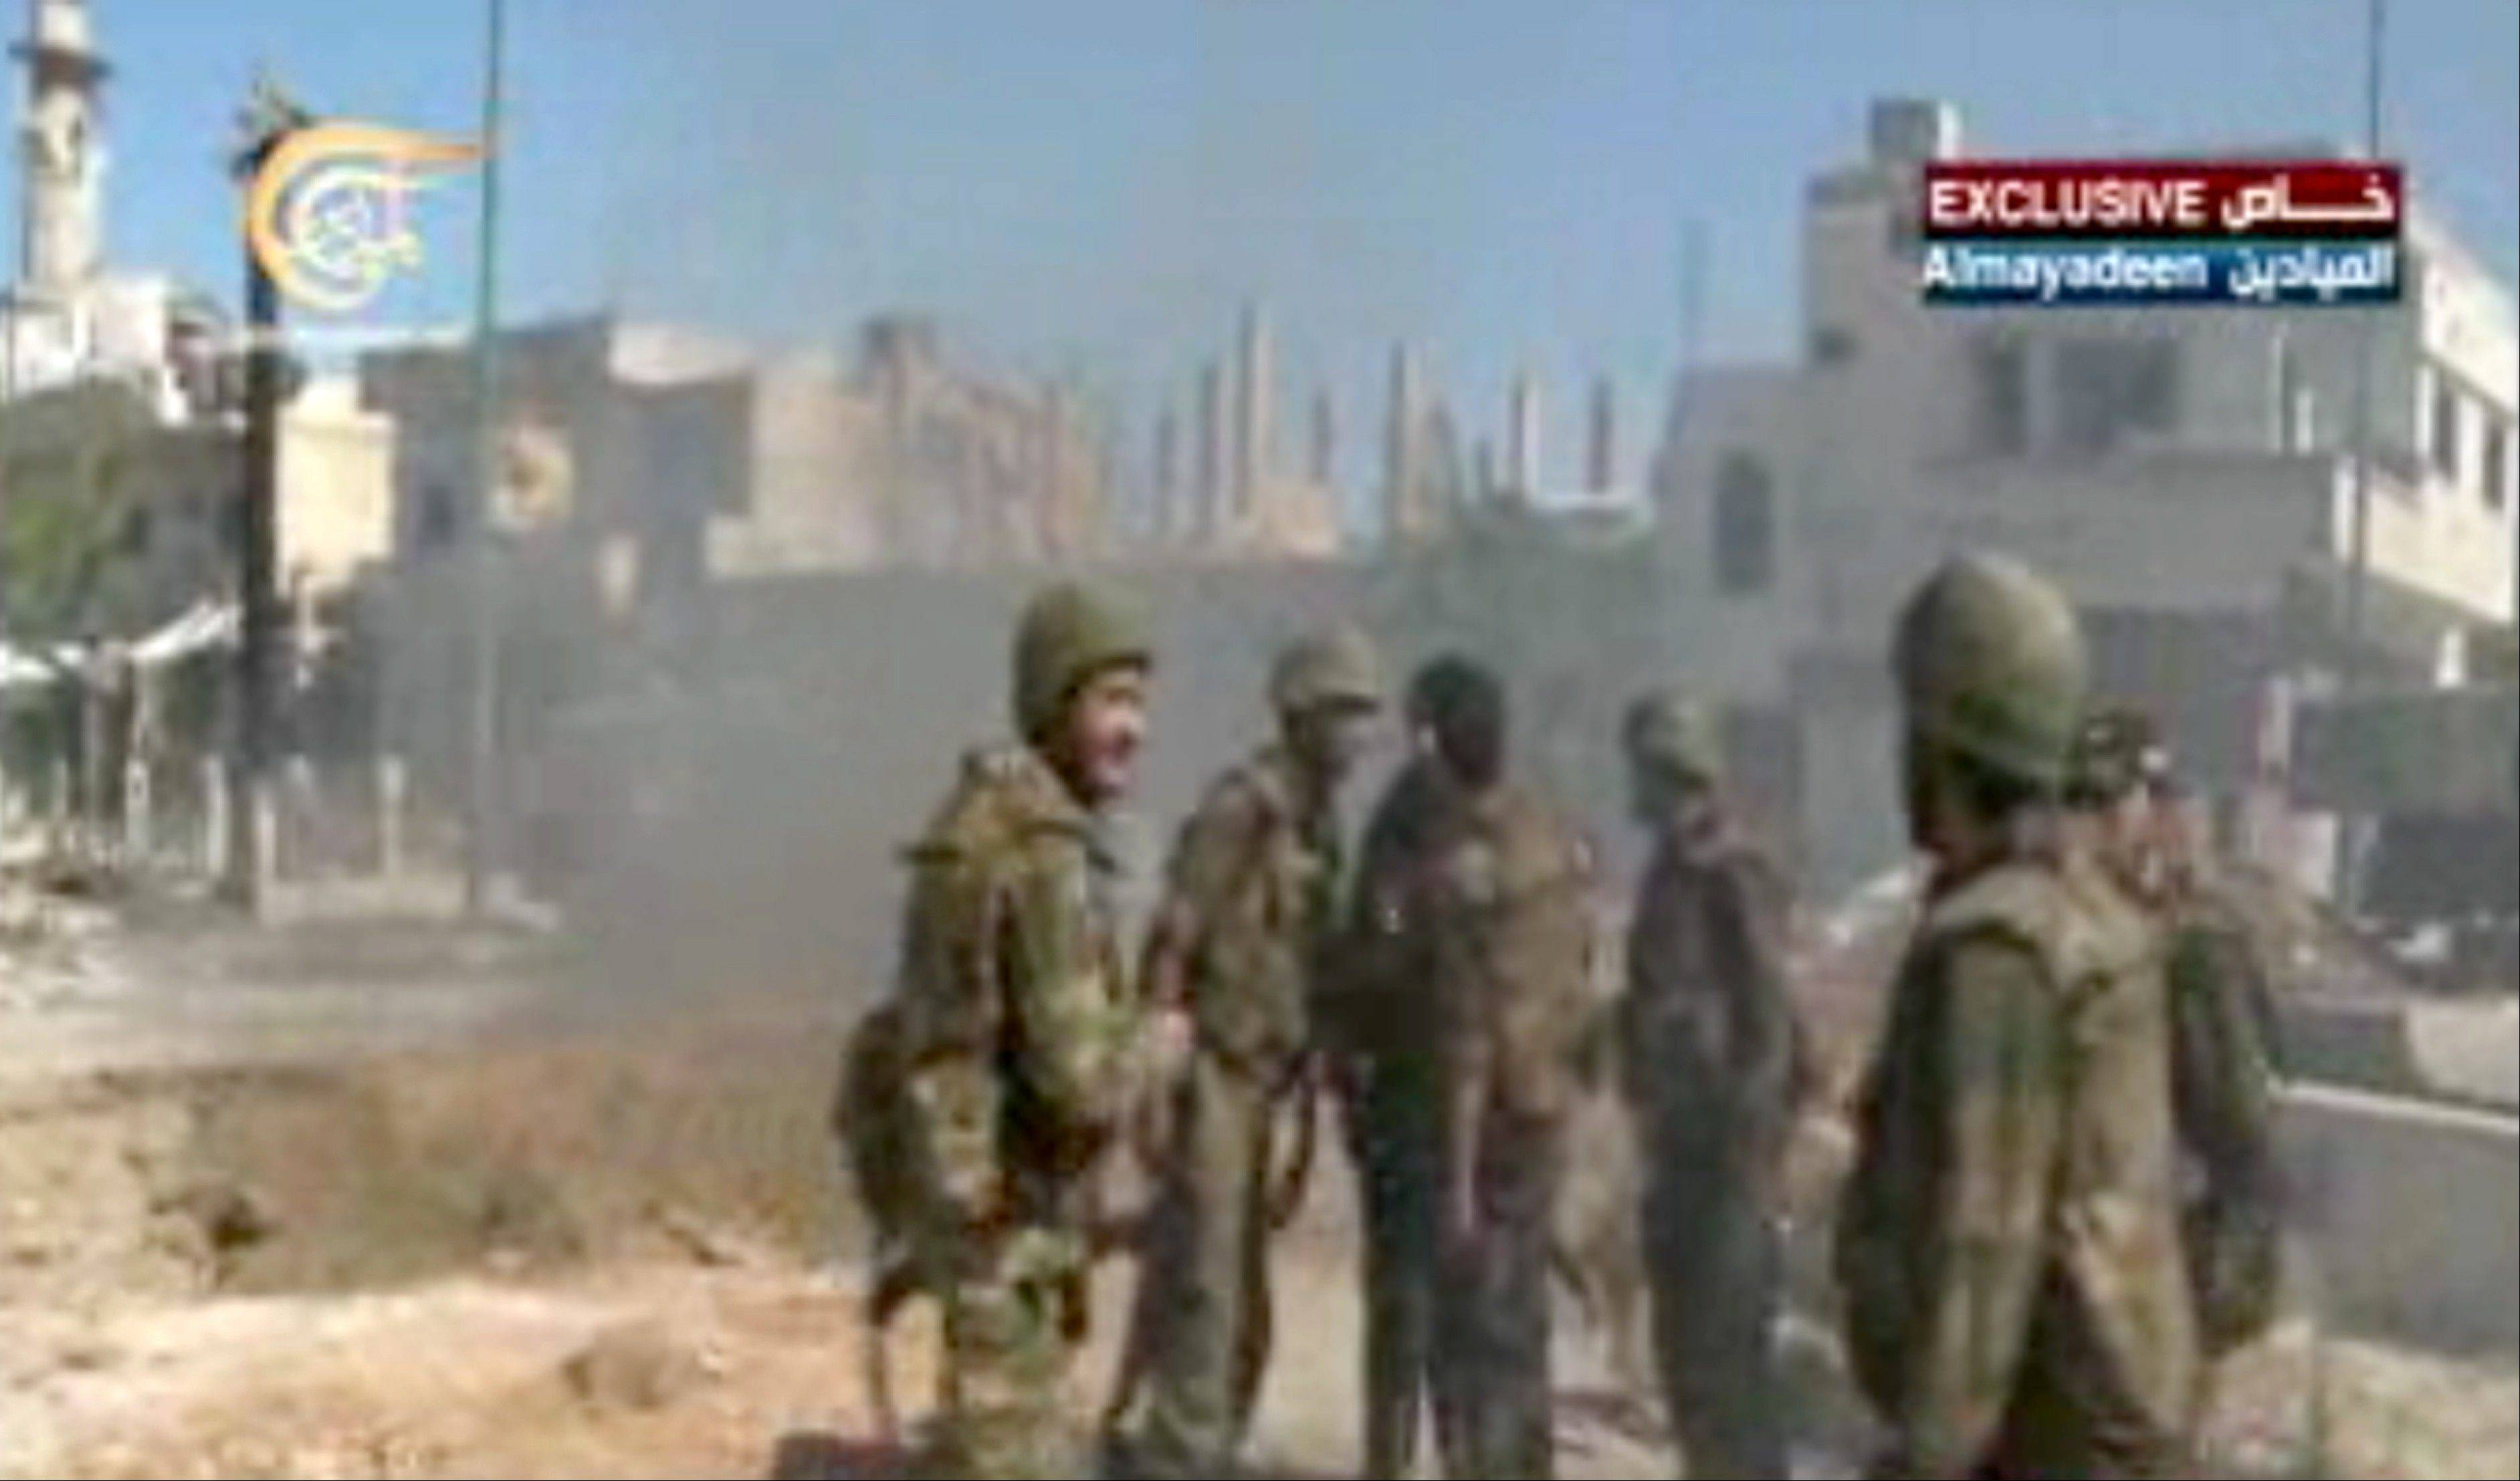 This image made from video broadcast Wednesday on Al-Mayadeen Television shows Syrian army troops in Qusair, Syria. The Syrian army triumphantly announced Wednesday the capture of a strategic town near the Lebanese border, telling the nation it has �cleansed� the rebel-held Qusair of �terrorists� fighting President Bashar Assad�s troops. The capture of the town, which lies close to the Lebanese border, solidifies some of the regime�s recent gains on the ground that have shifted the balance of power in Assad�s favor in the Syrian civil war.